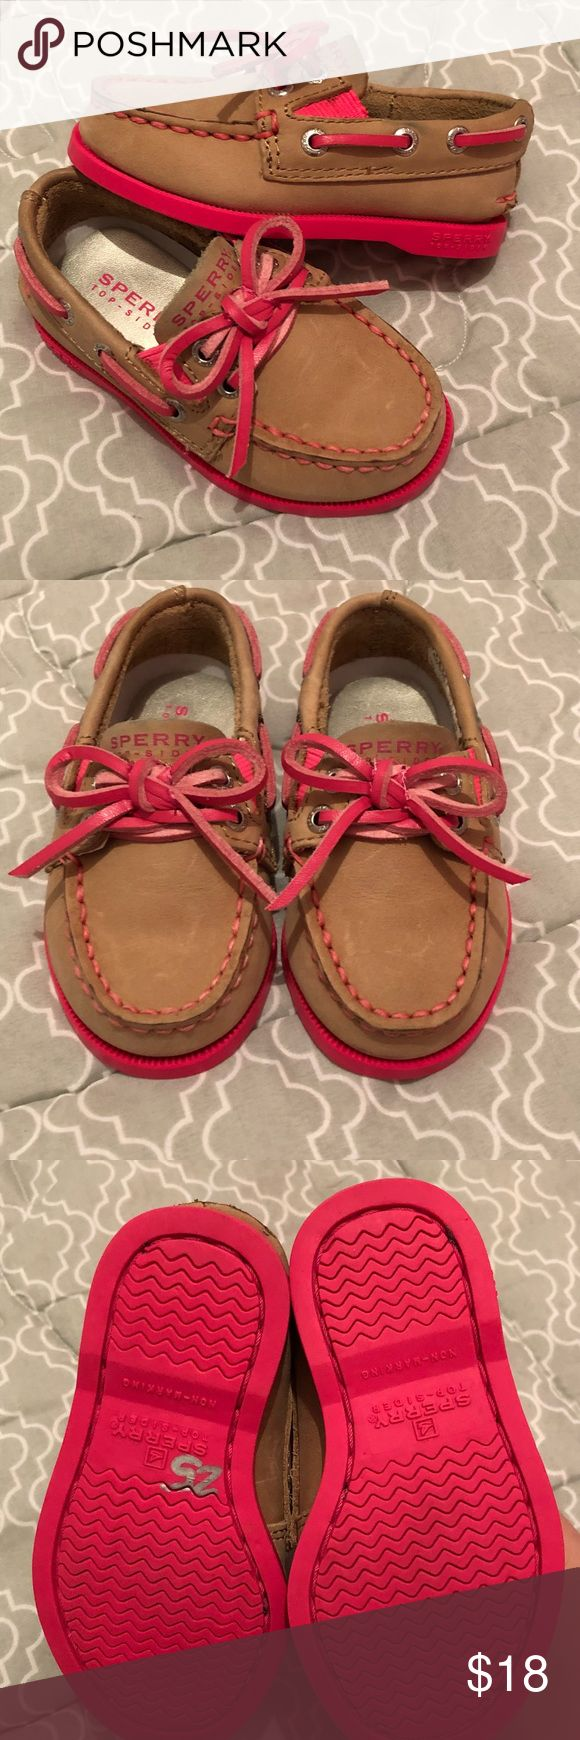 Toddler Sperry's. Size 5c toddler girl Sperry's Top-spiders. Worn once and only indoors. Sperry Top-Sider Shoes Baby & Walker